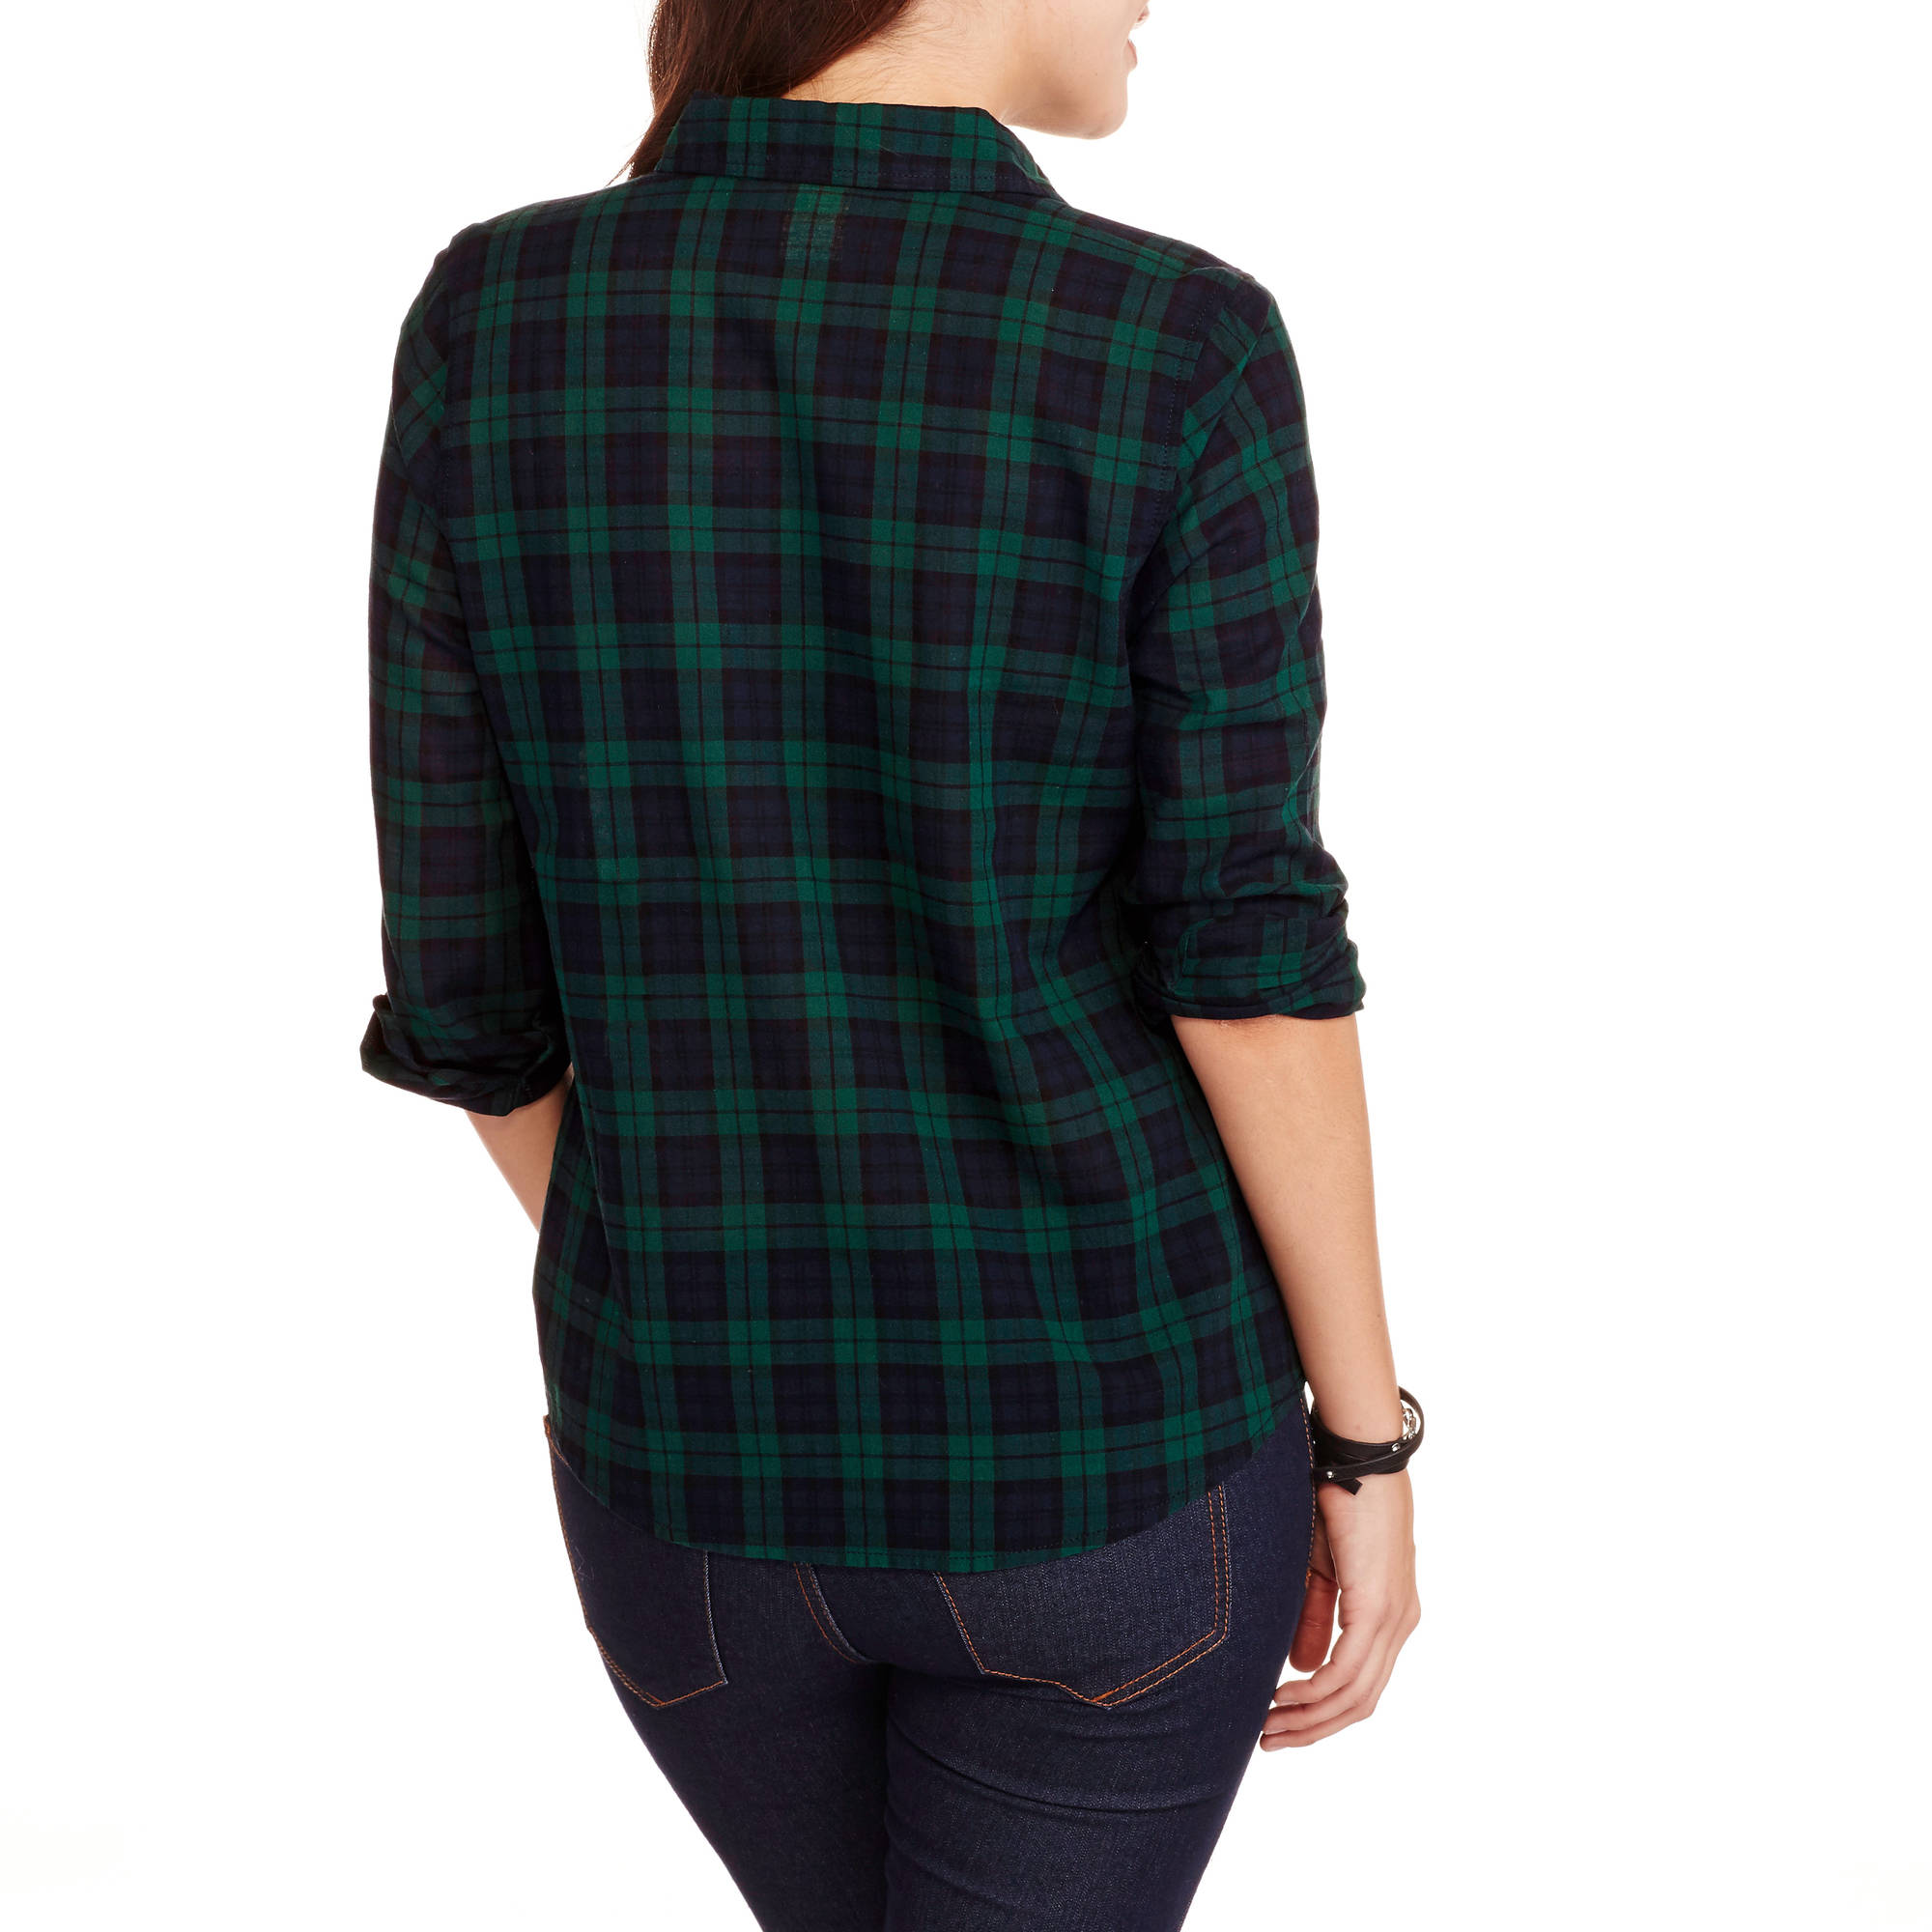 Faded Glory Women's Classic Plaid Shirt - Walmart.com